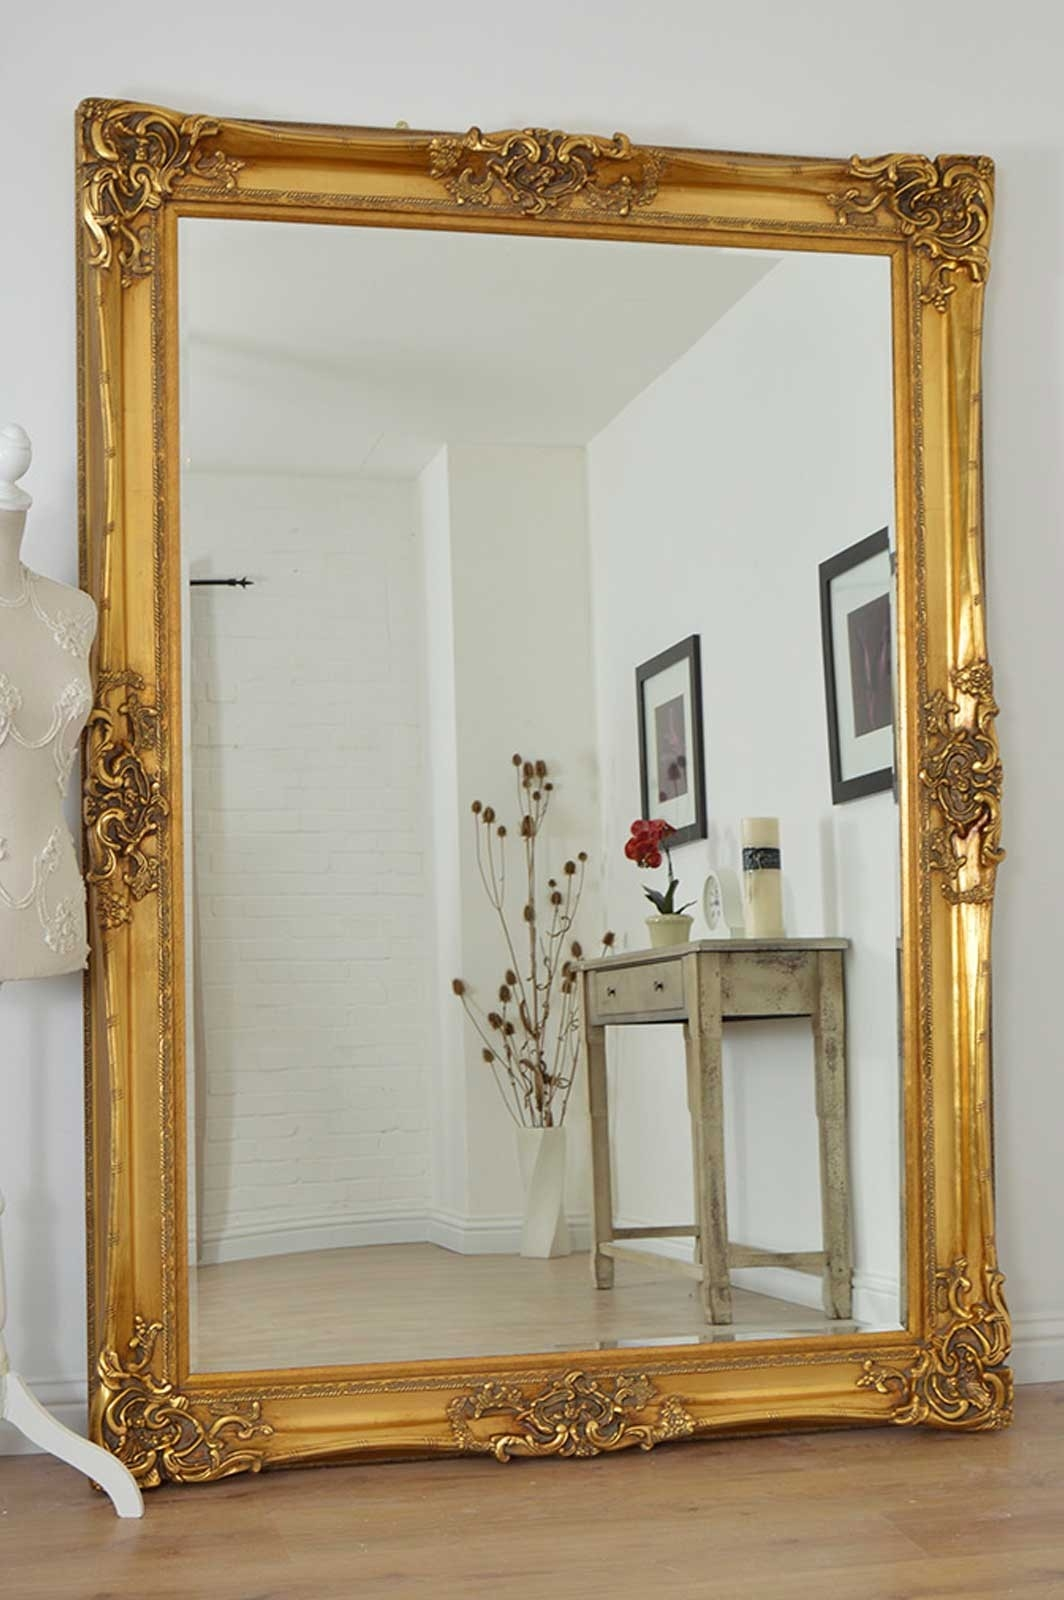 Large Gold Very Ornate Antique Design Wall Mirror 7ft X 5ft 213cm Regarding Antique Gold Mirrors Large (Photo 1 of 15)